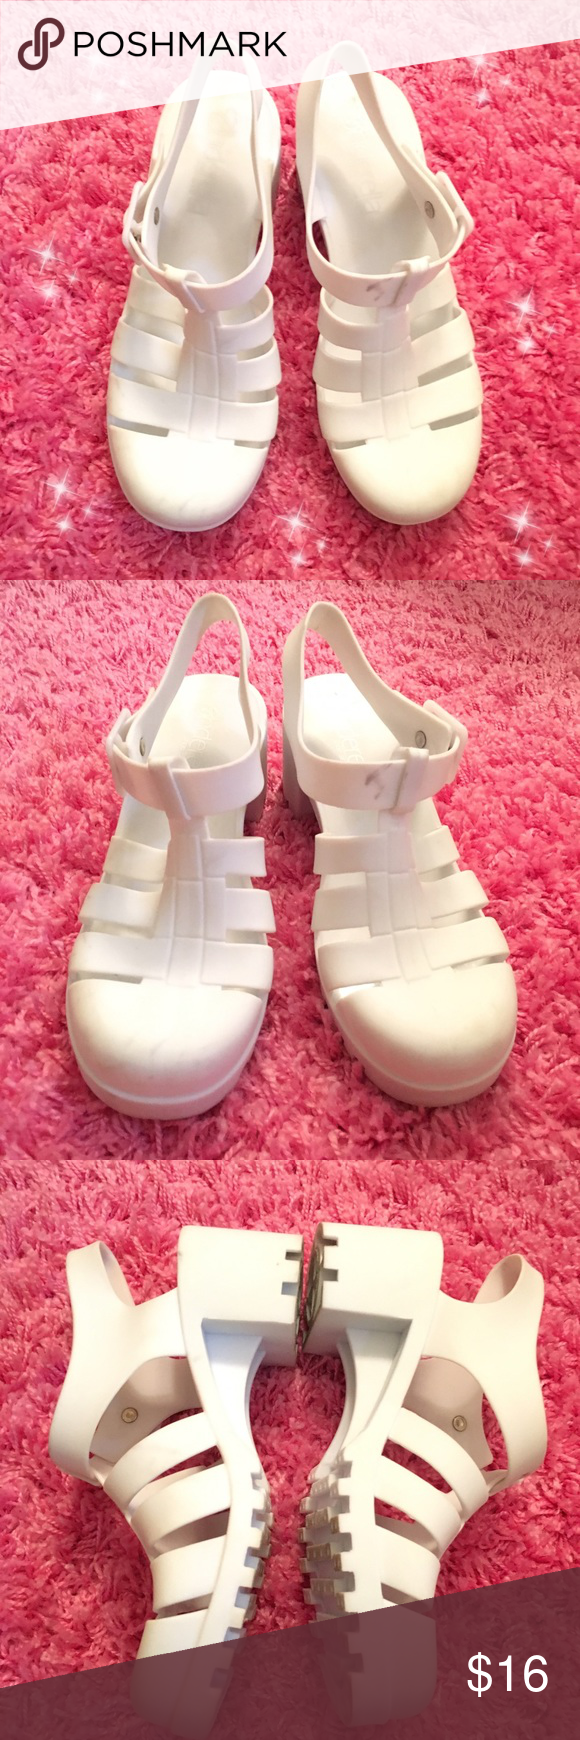 White Jelly Sandal Shoes Who doesn't love Jelly shoes?! These rock. 😂💖 Slightly used, has some minor flaws but the shoe itself is in good condition! 💕😇✨ open to any reasonable offers! Shoes